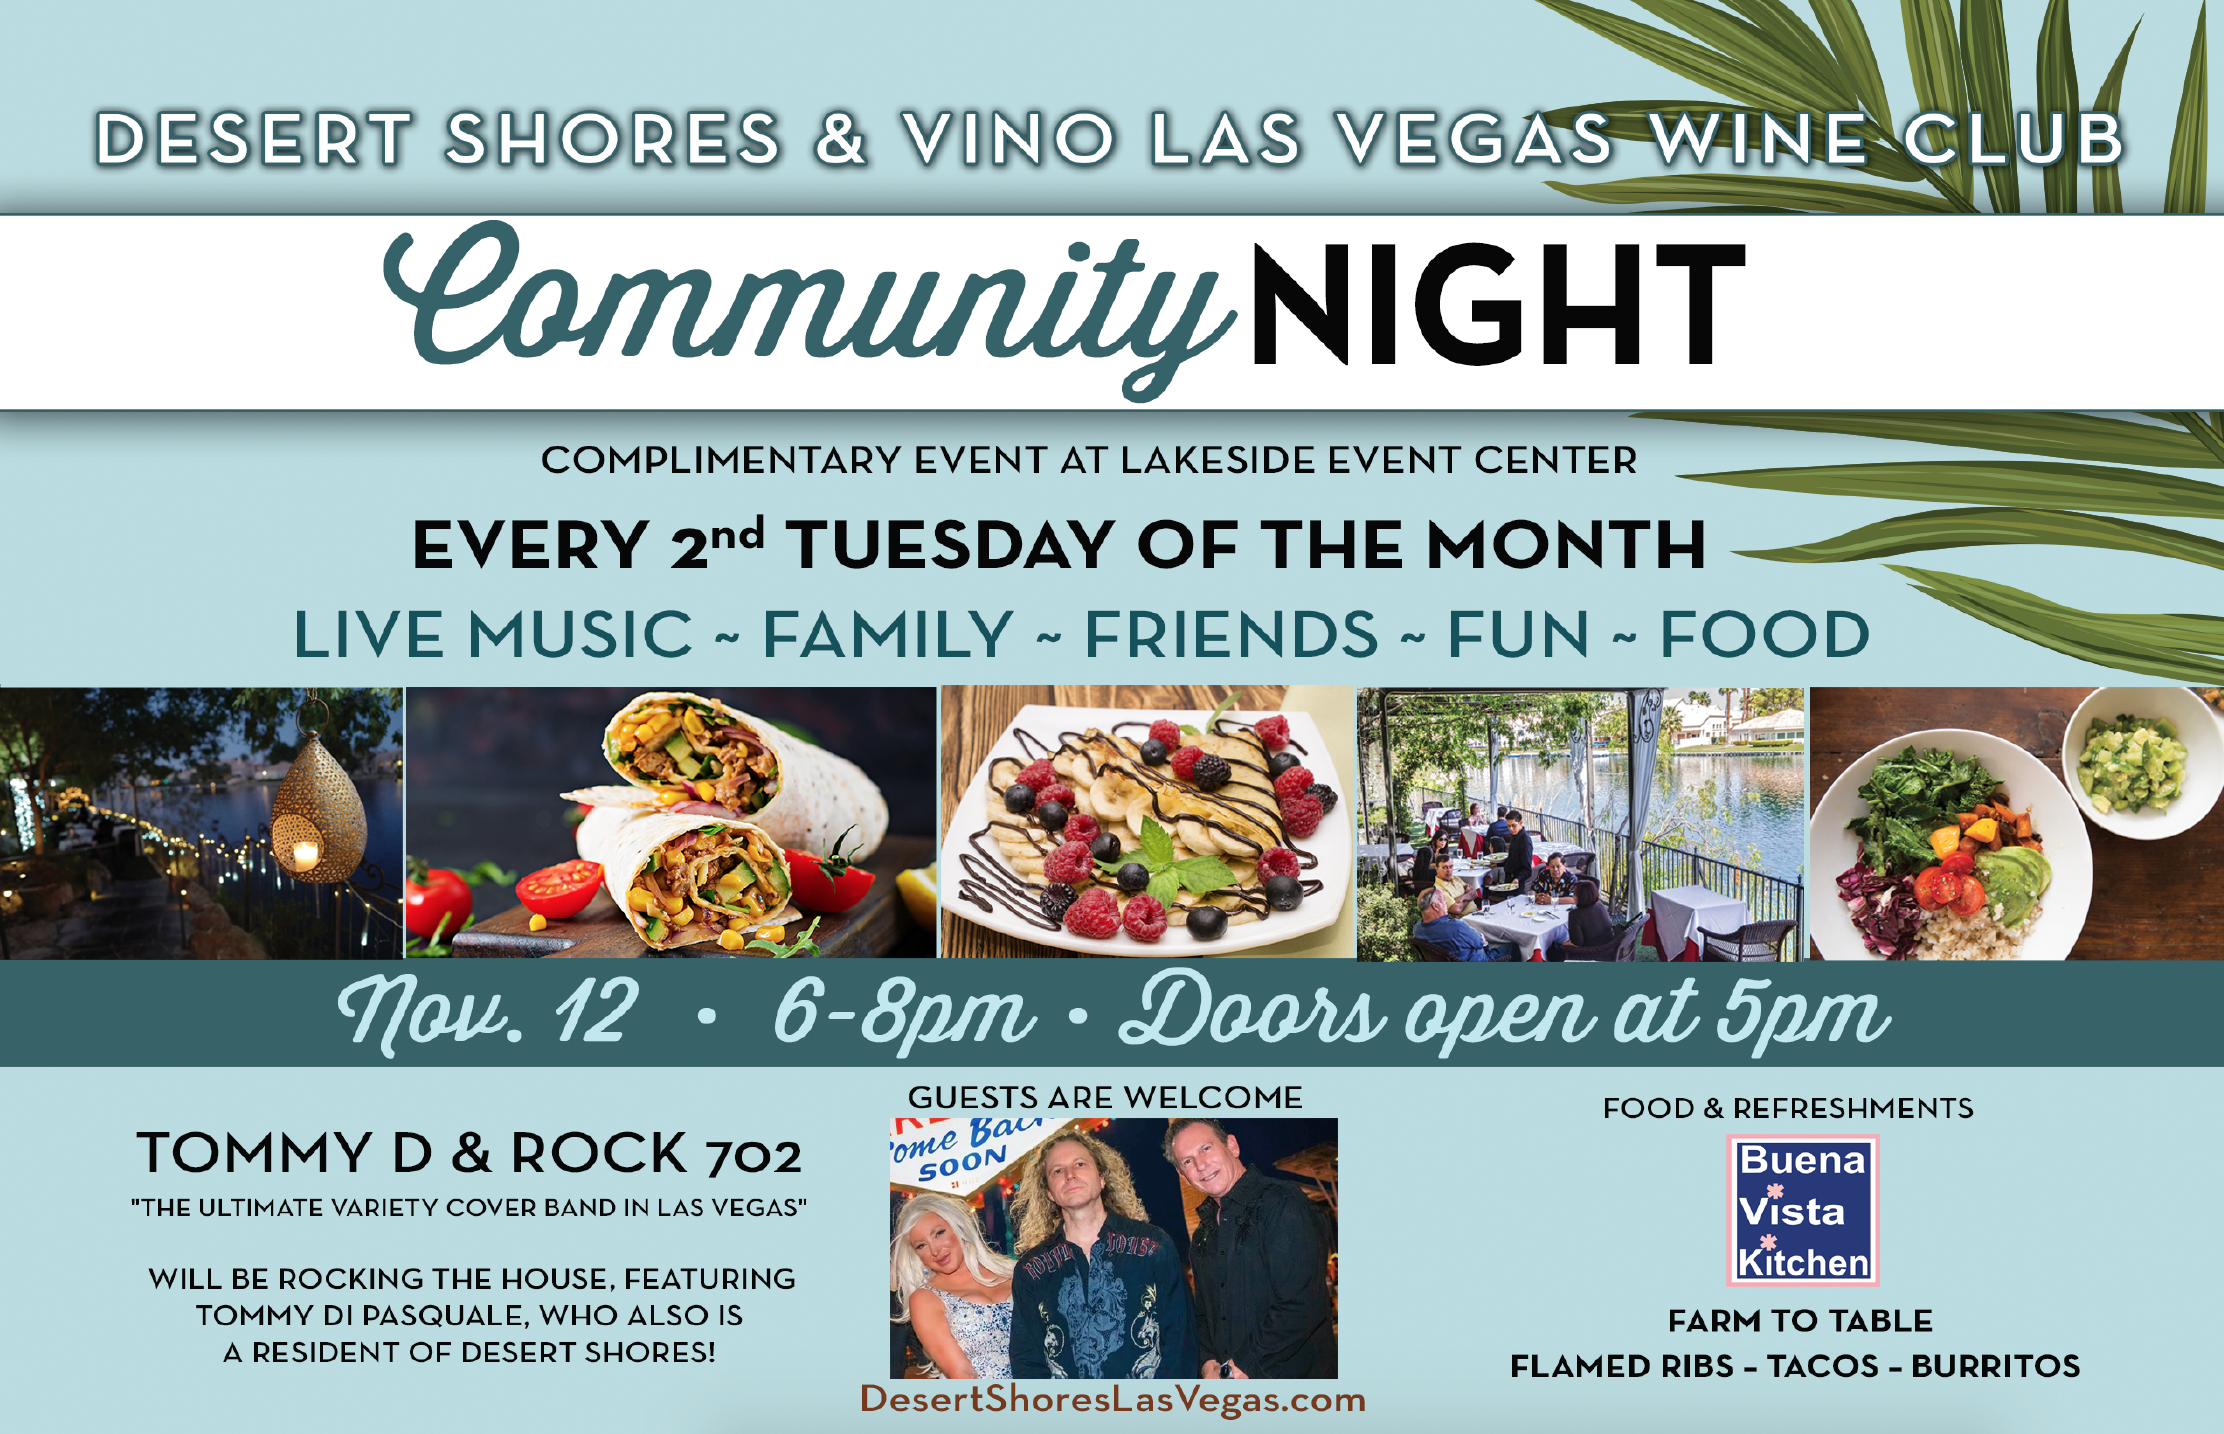 Desert Shores Vino Las Vegas Wine Club Community Event Flyer for November 12, 2019